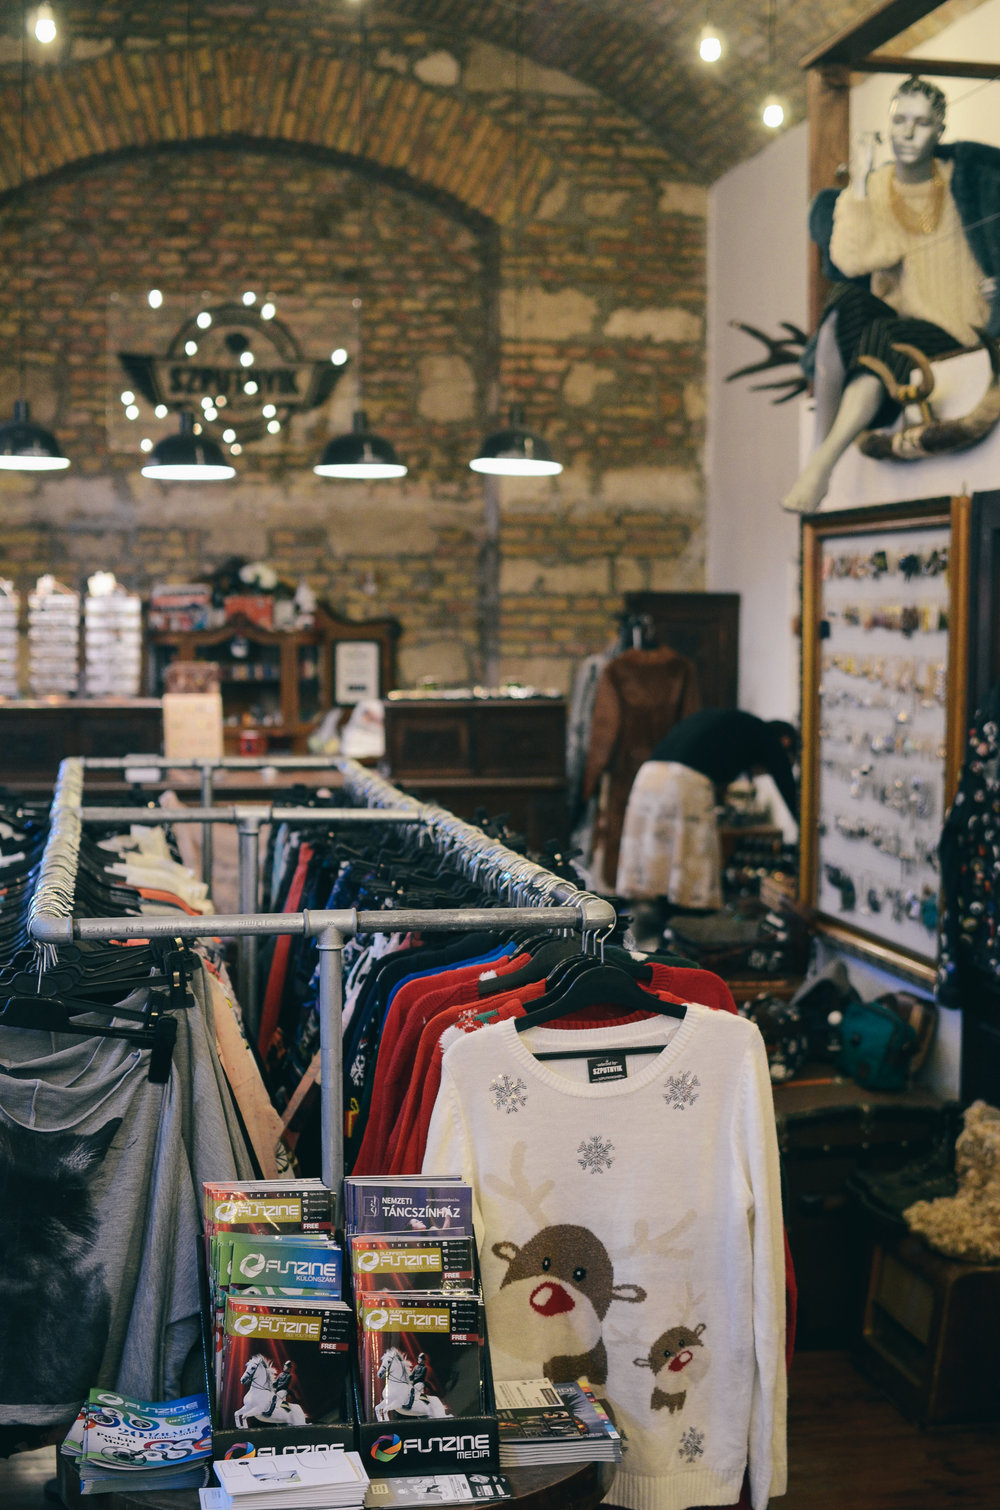 ^^ there are a ton of vintage shops sprinkled around the city. pop in for a browse, you'll definitely find a souvenier